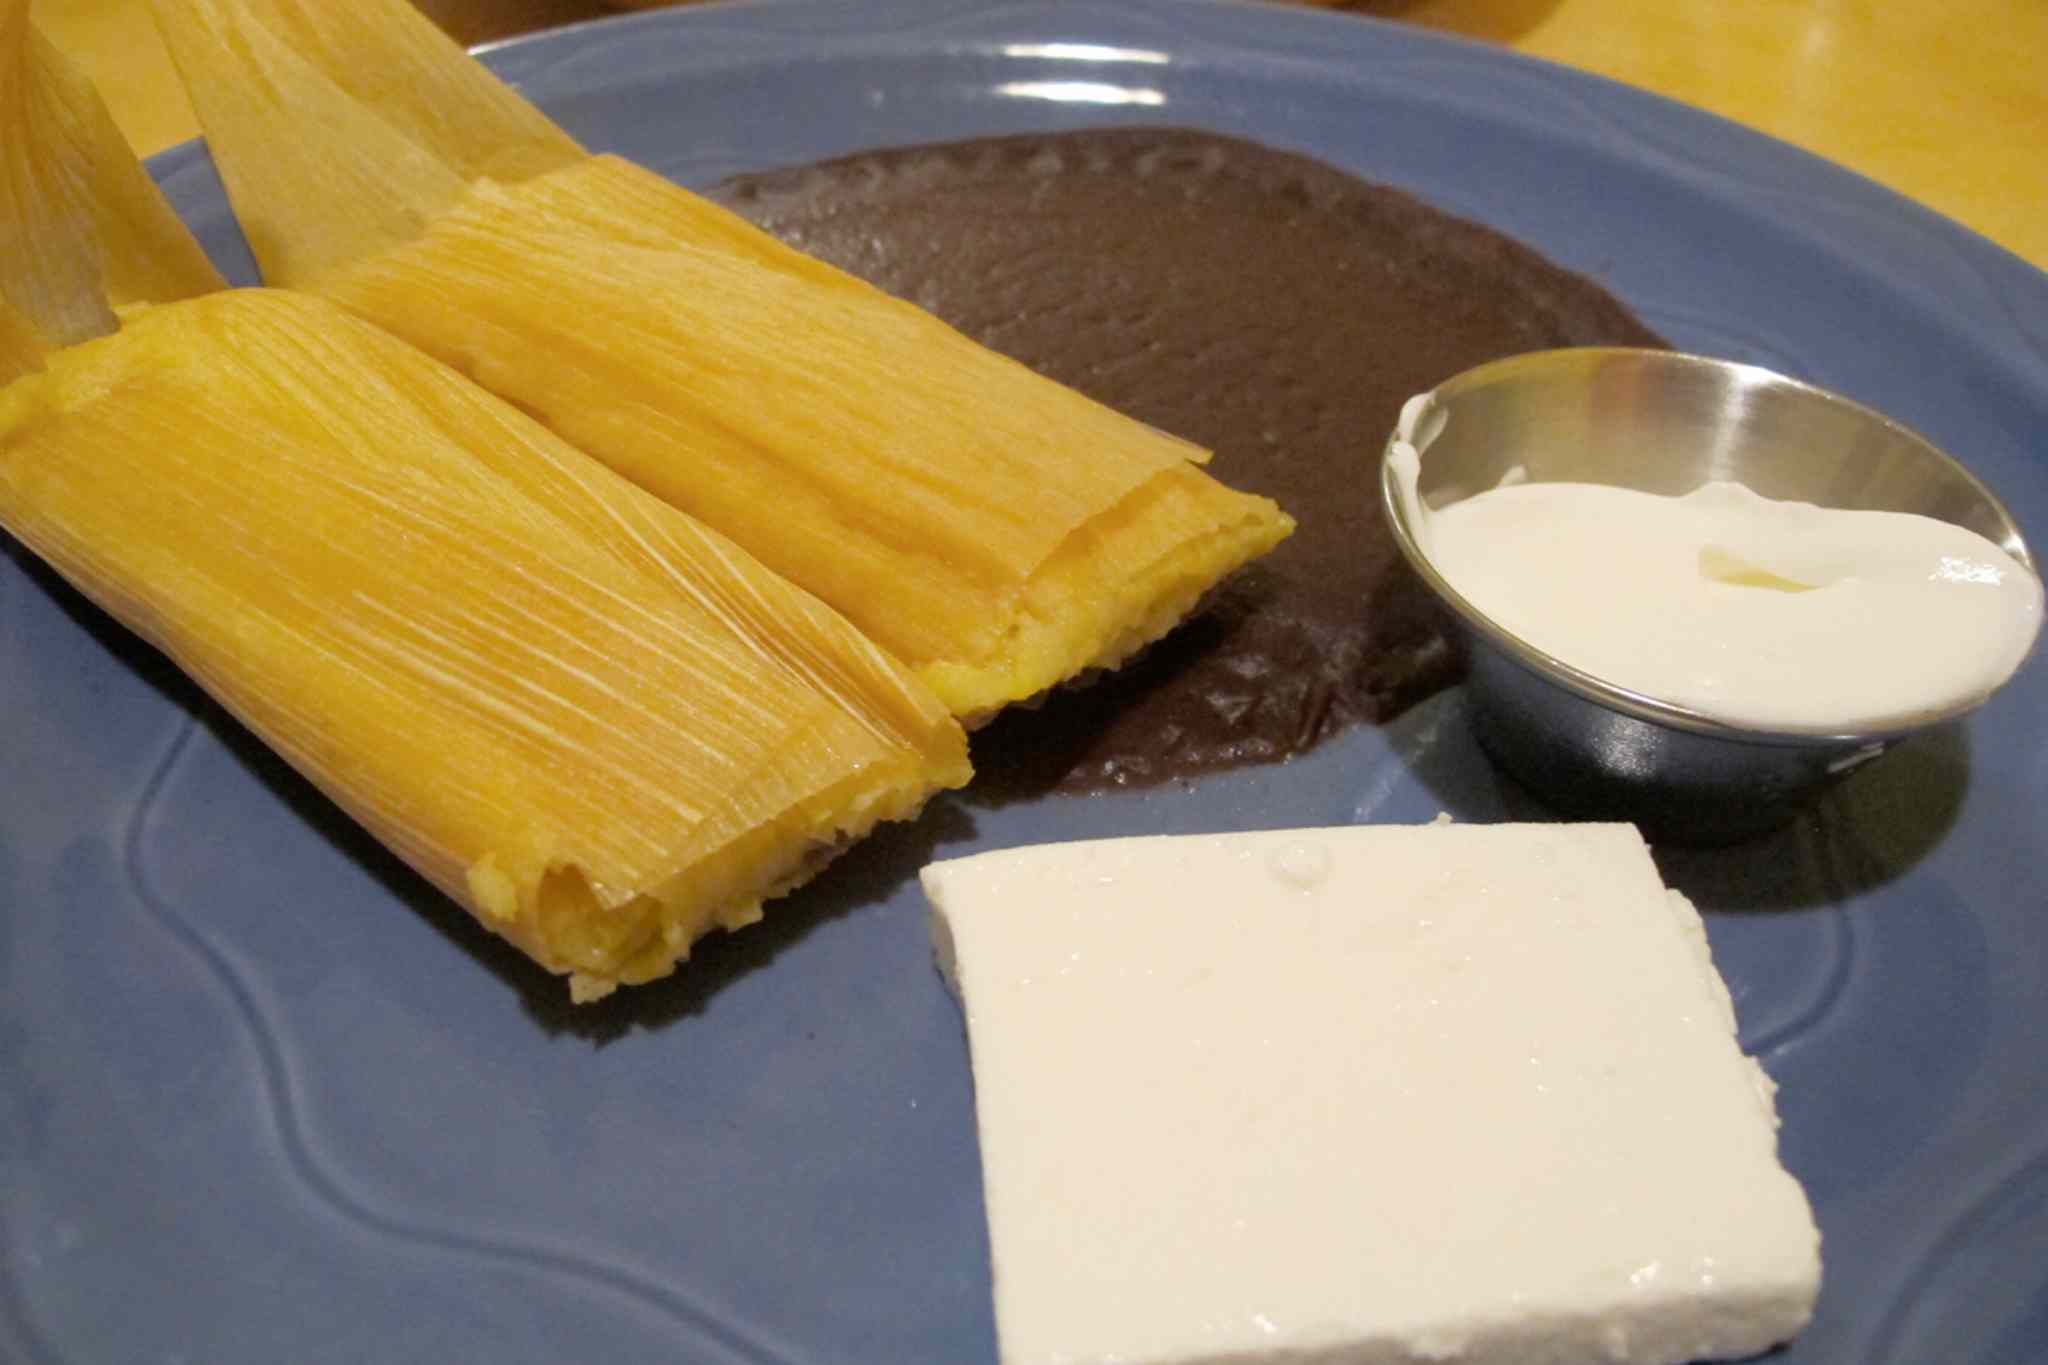 La Fiesta Cafecito's tamales (pictured), contain a steamed-cornbread-like filling that's just one of the many wonderful flavours on offer at the restaurant, which specializes in Salvadoran cuisine.